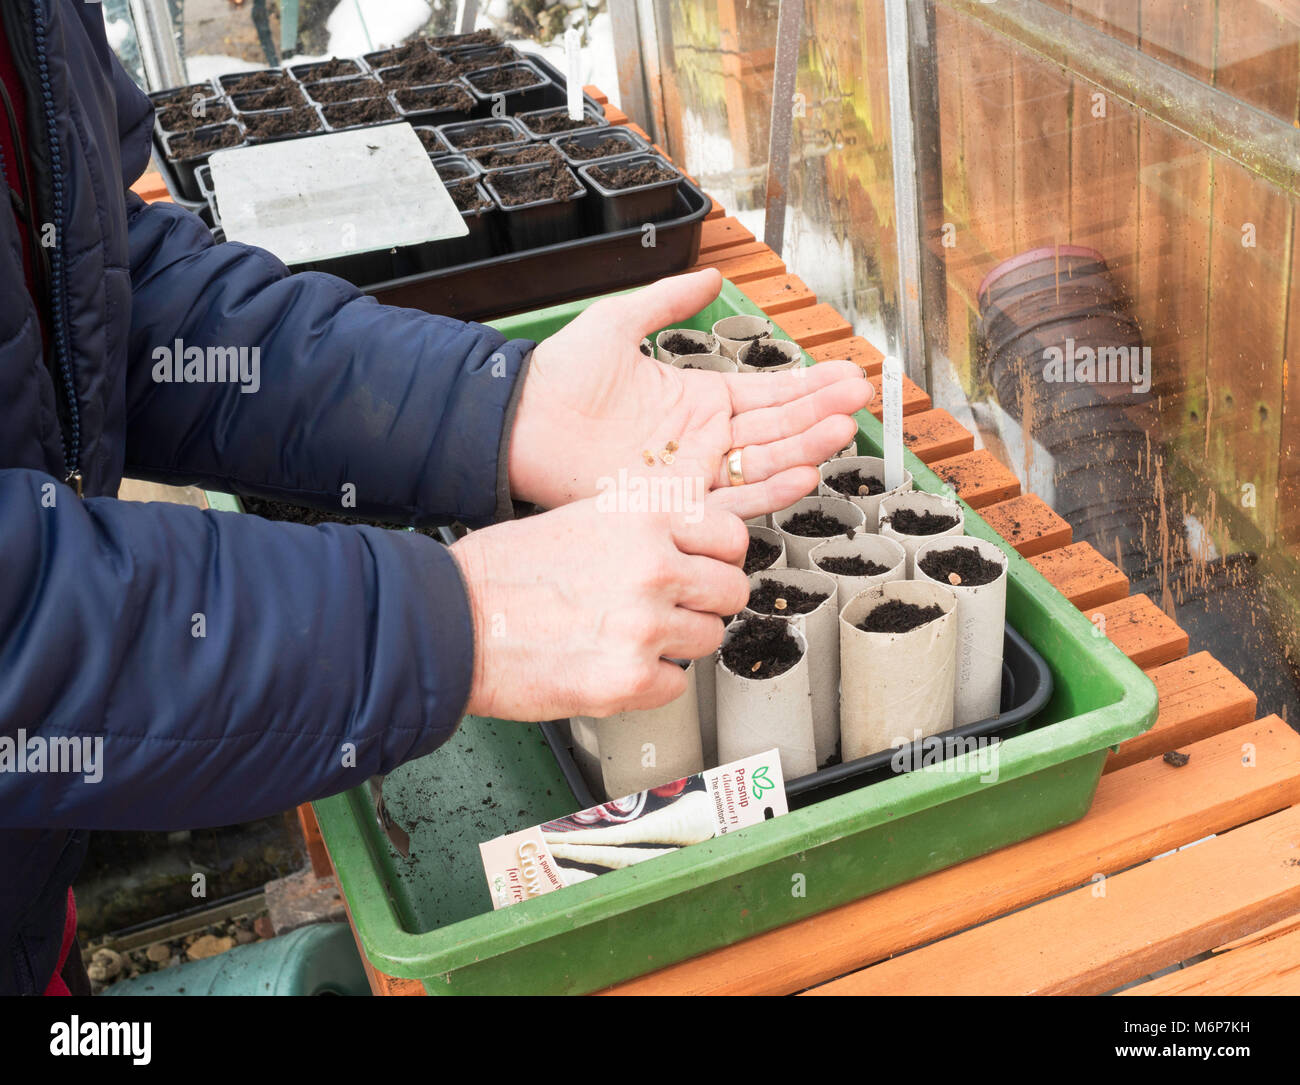 Man sowing parsnip seeds into toilet roll tubes within greenhouse, England, UK. - Stock Image